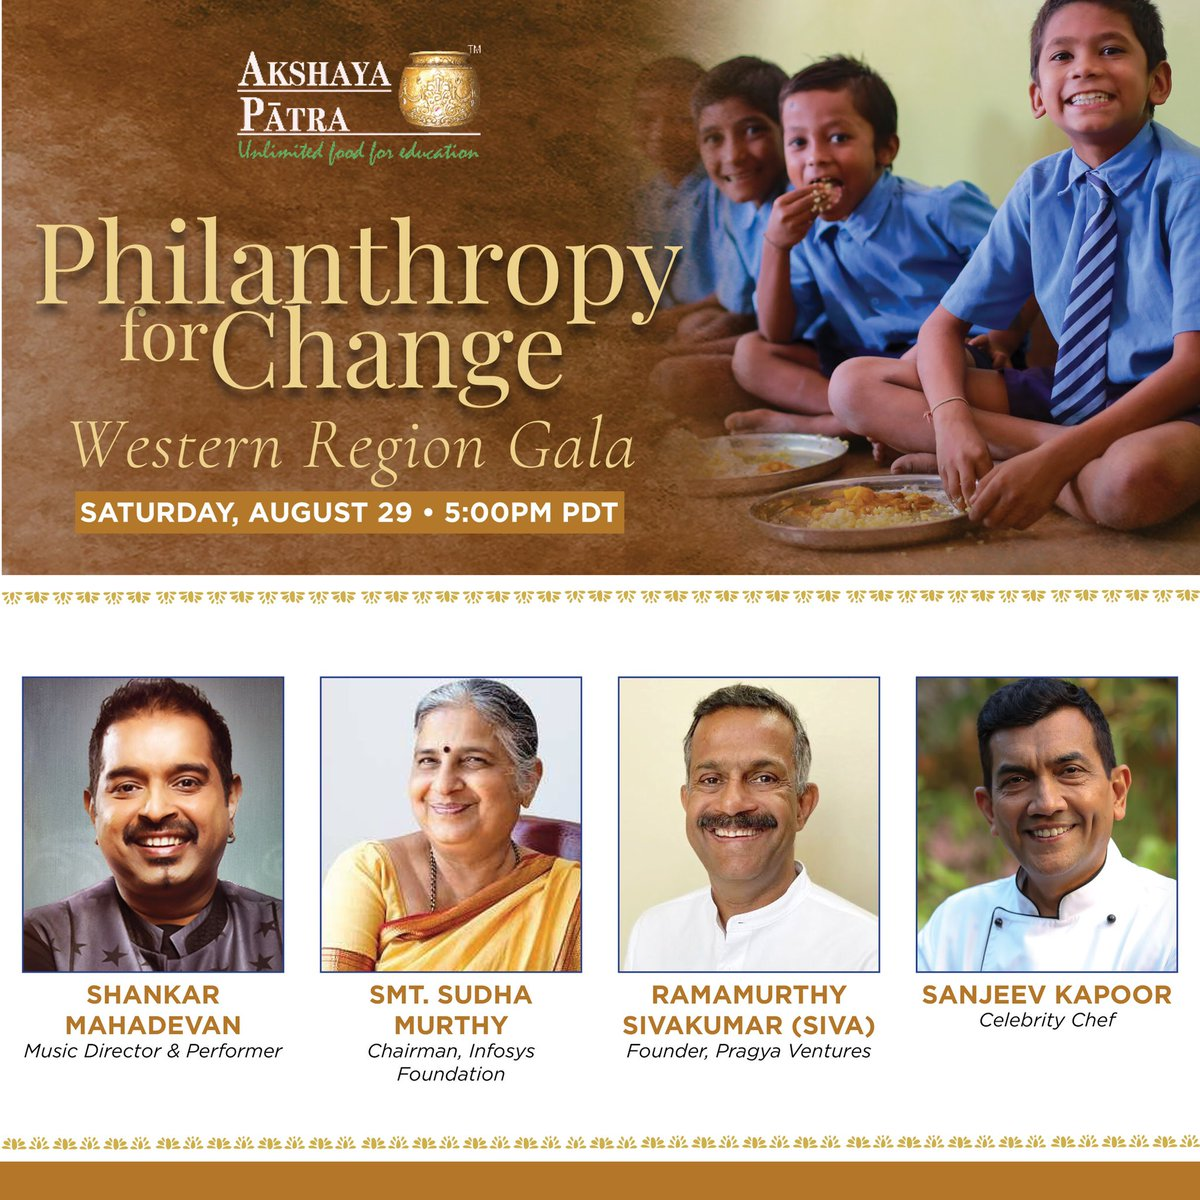 Join us today by registering on this link- https://t.co/h6fRqMkZFW @AkshayaPatraUSA @Shankar_Live https://t.co/qeCDfHkUXt